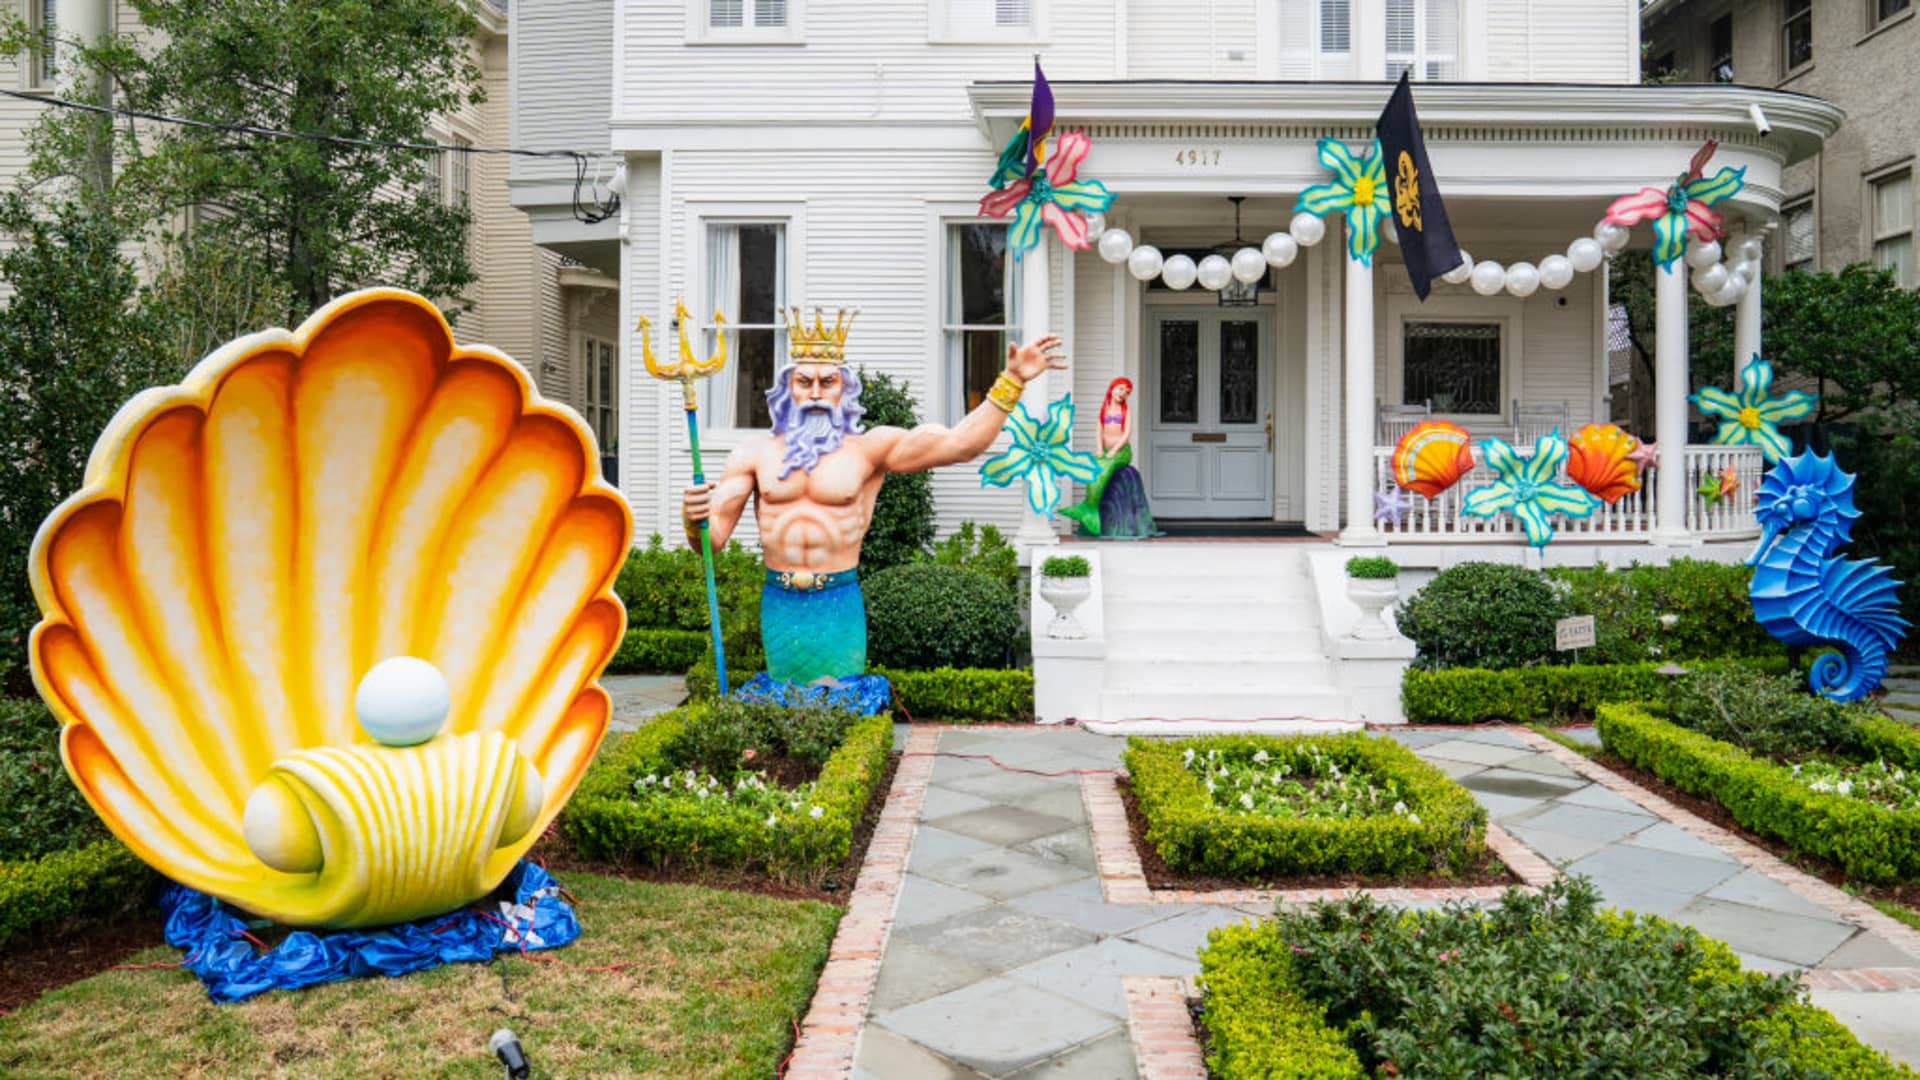 A home on St. Charles Avenue is decorated with The Little Mermaid theme on February 13, 2021 in New Orleans, Louisiana.